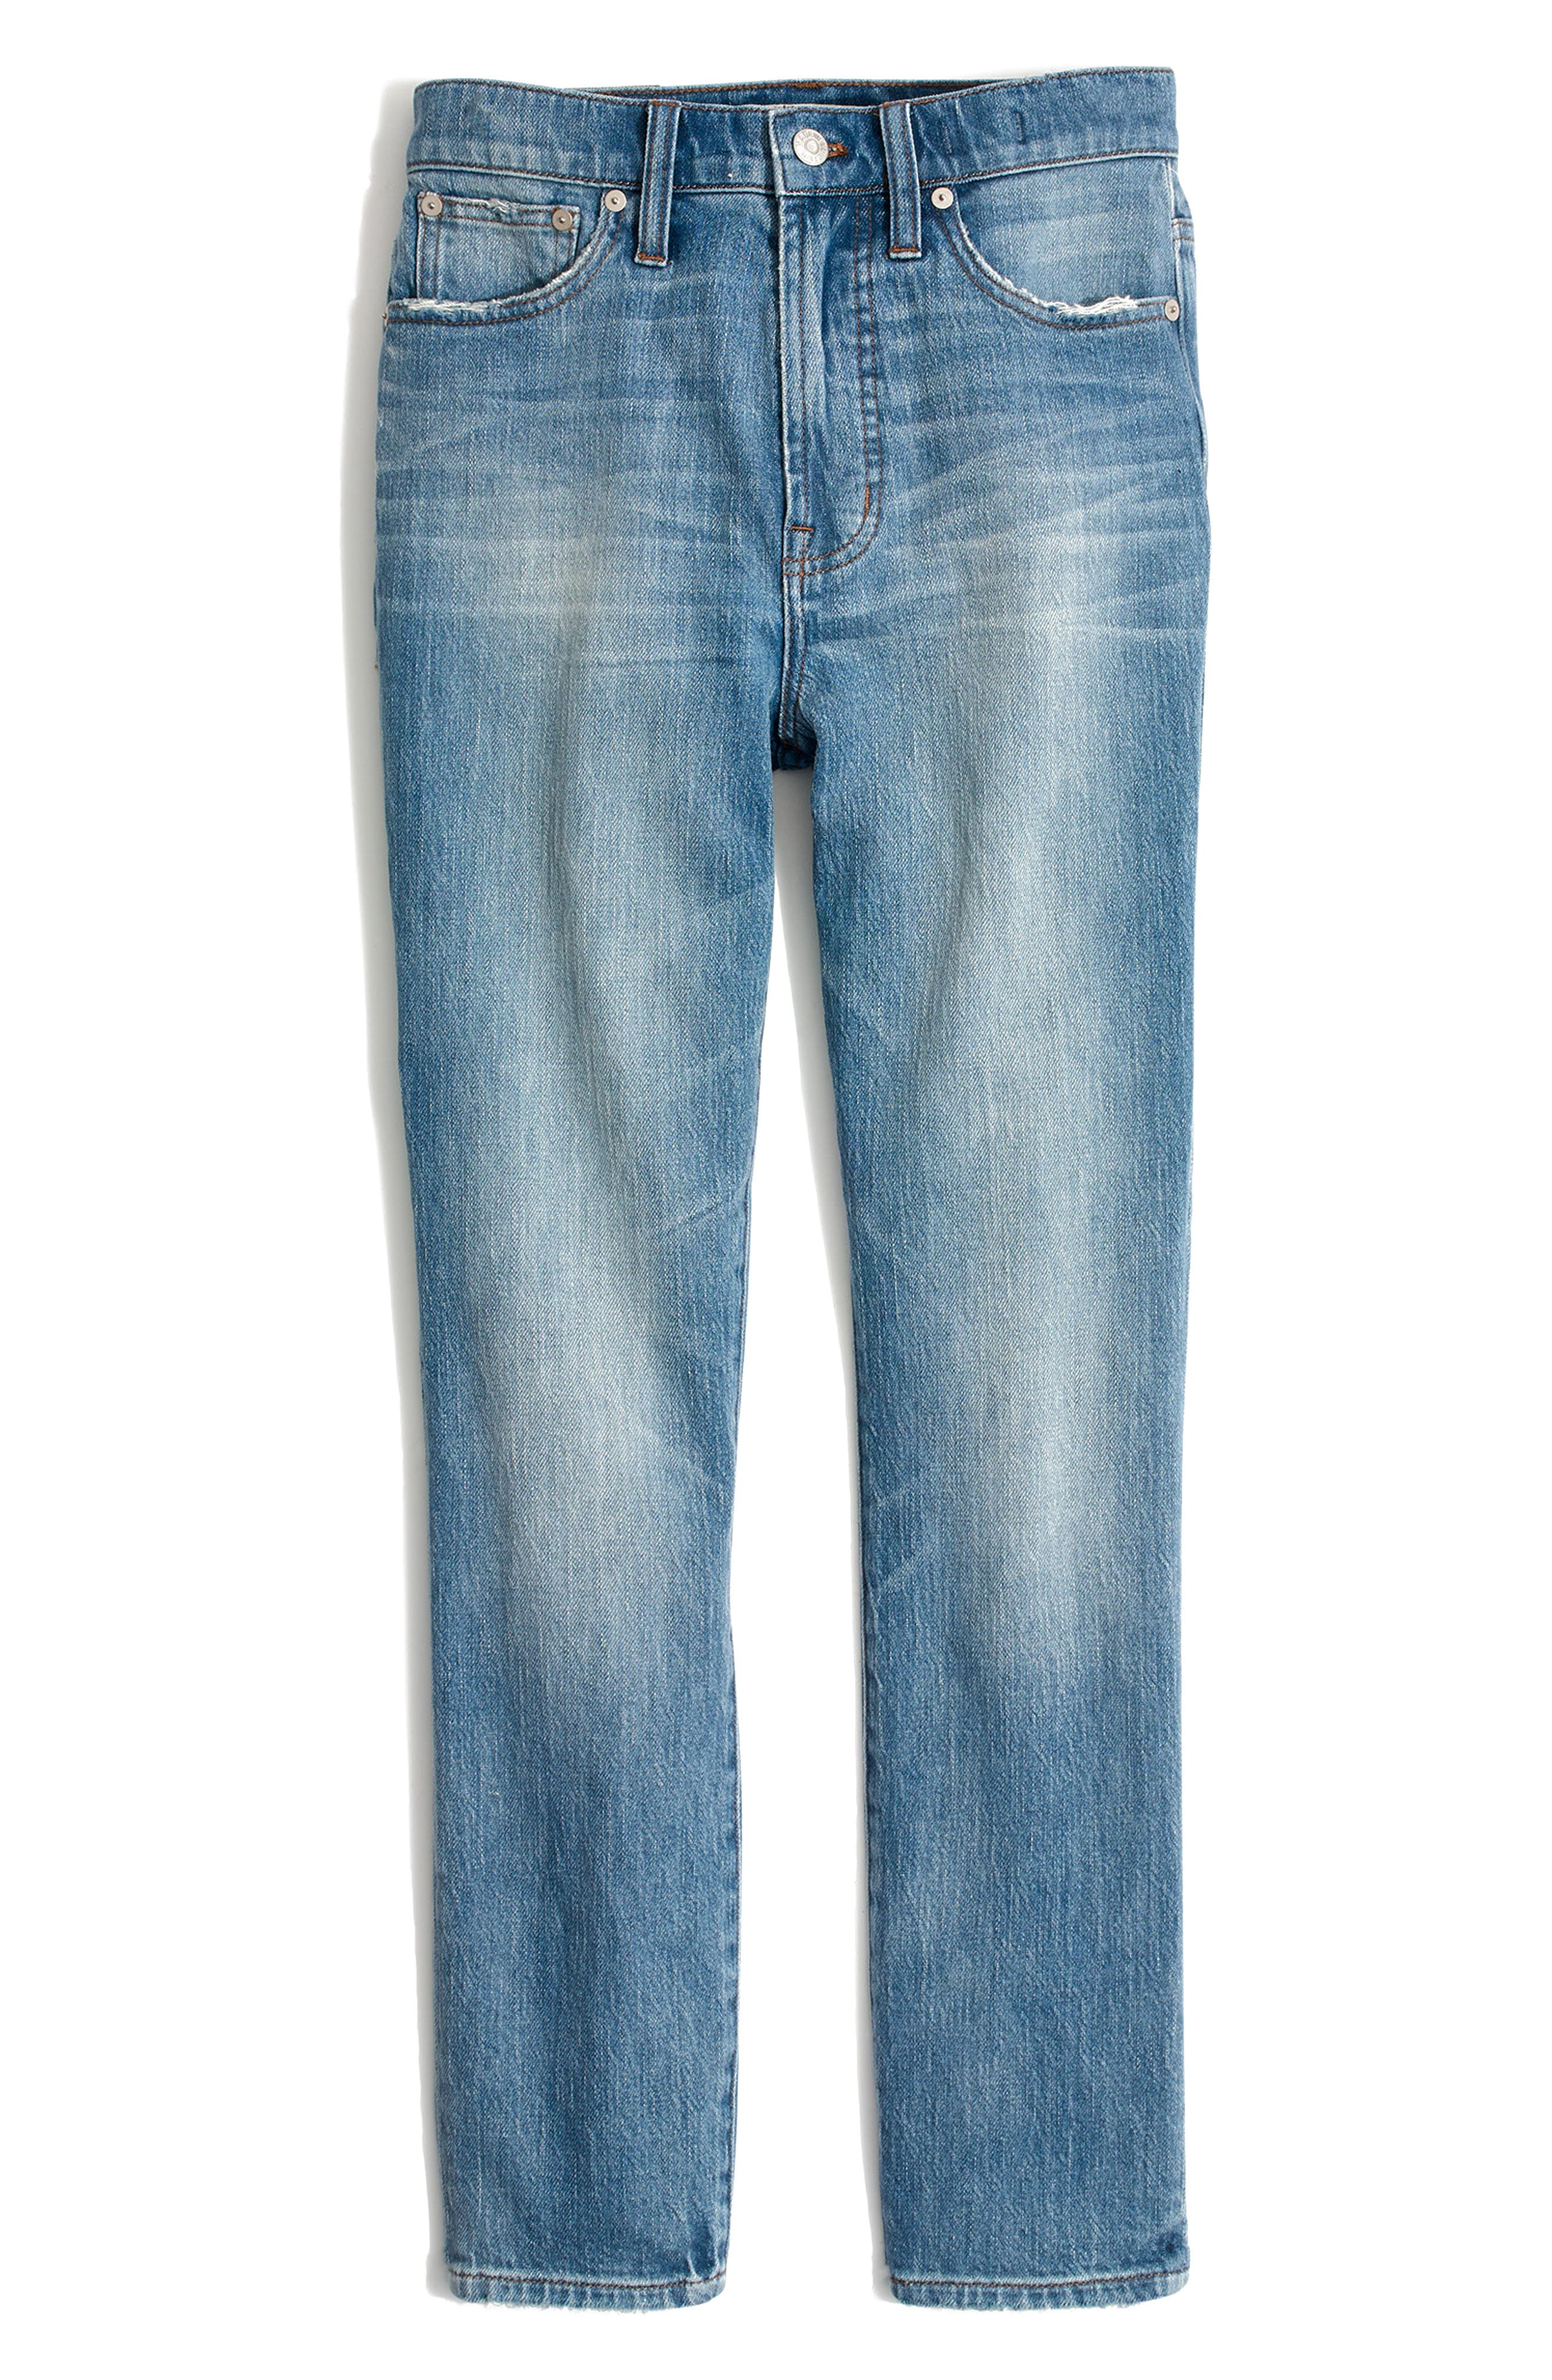 MADEWELL, The Perfect Vintage Heart Patch High Waist Jeans, Alternate thumbnail 6, color, ATWATER WASH